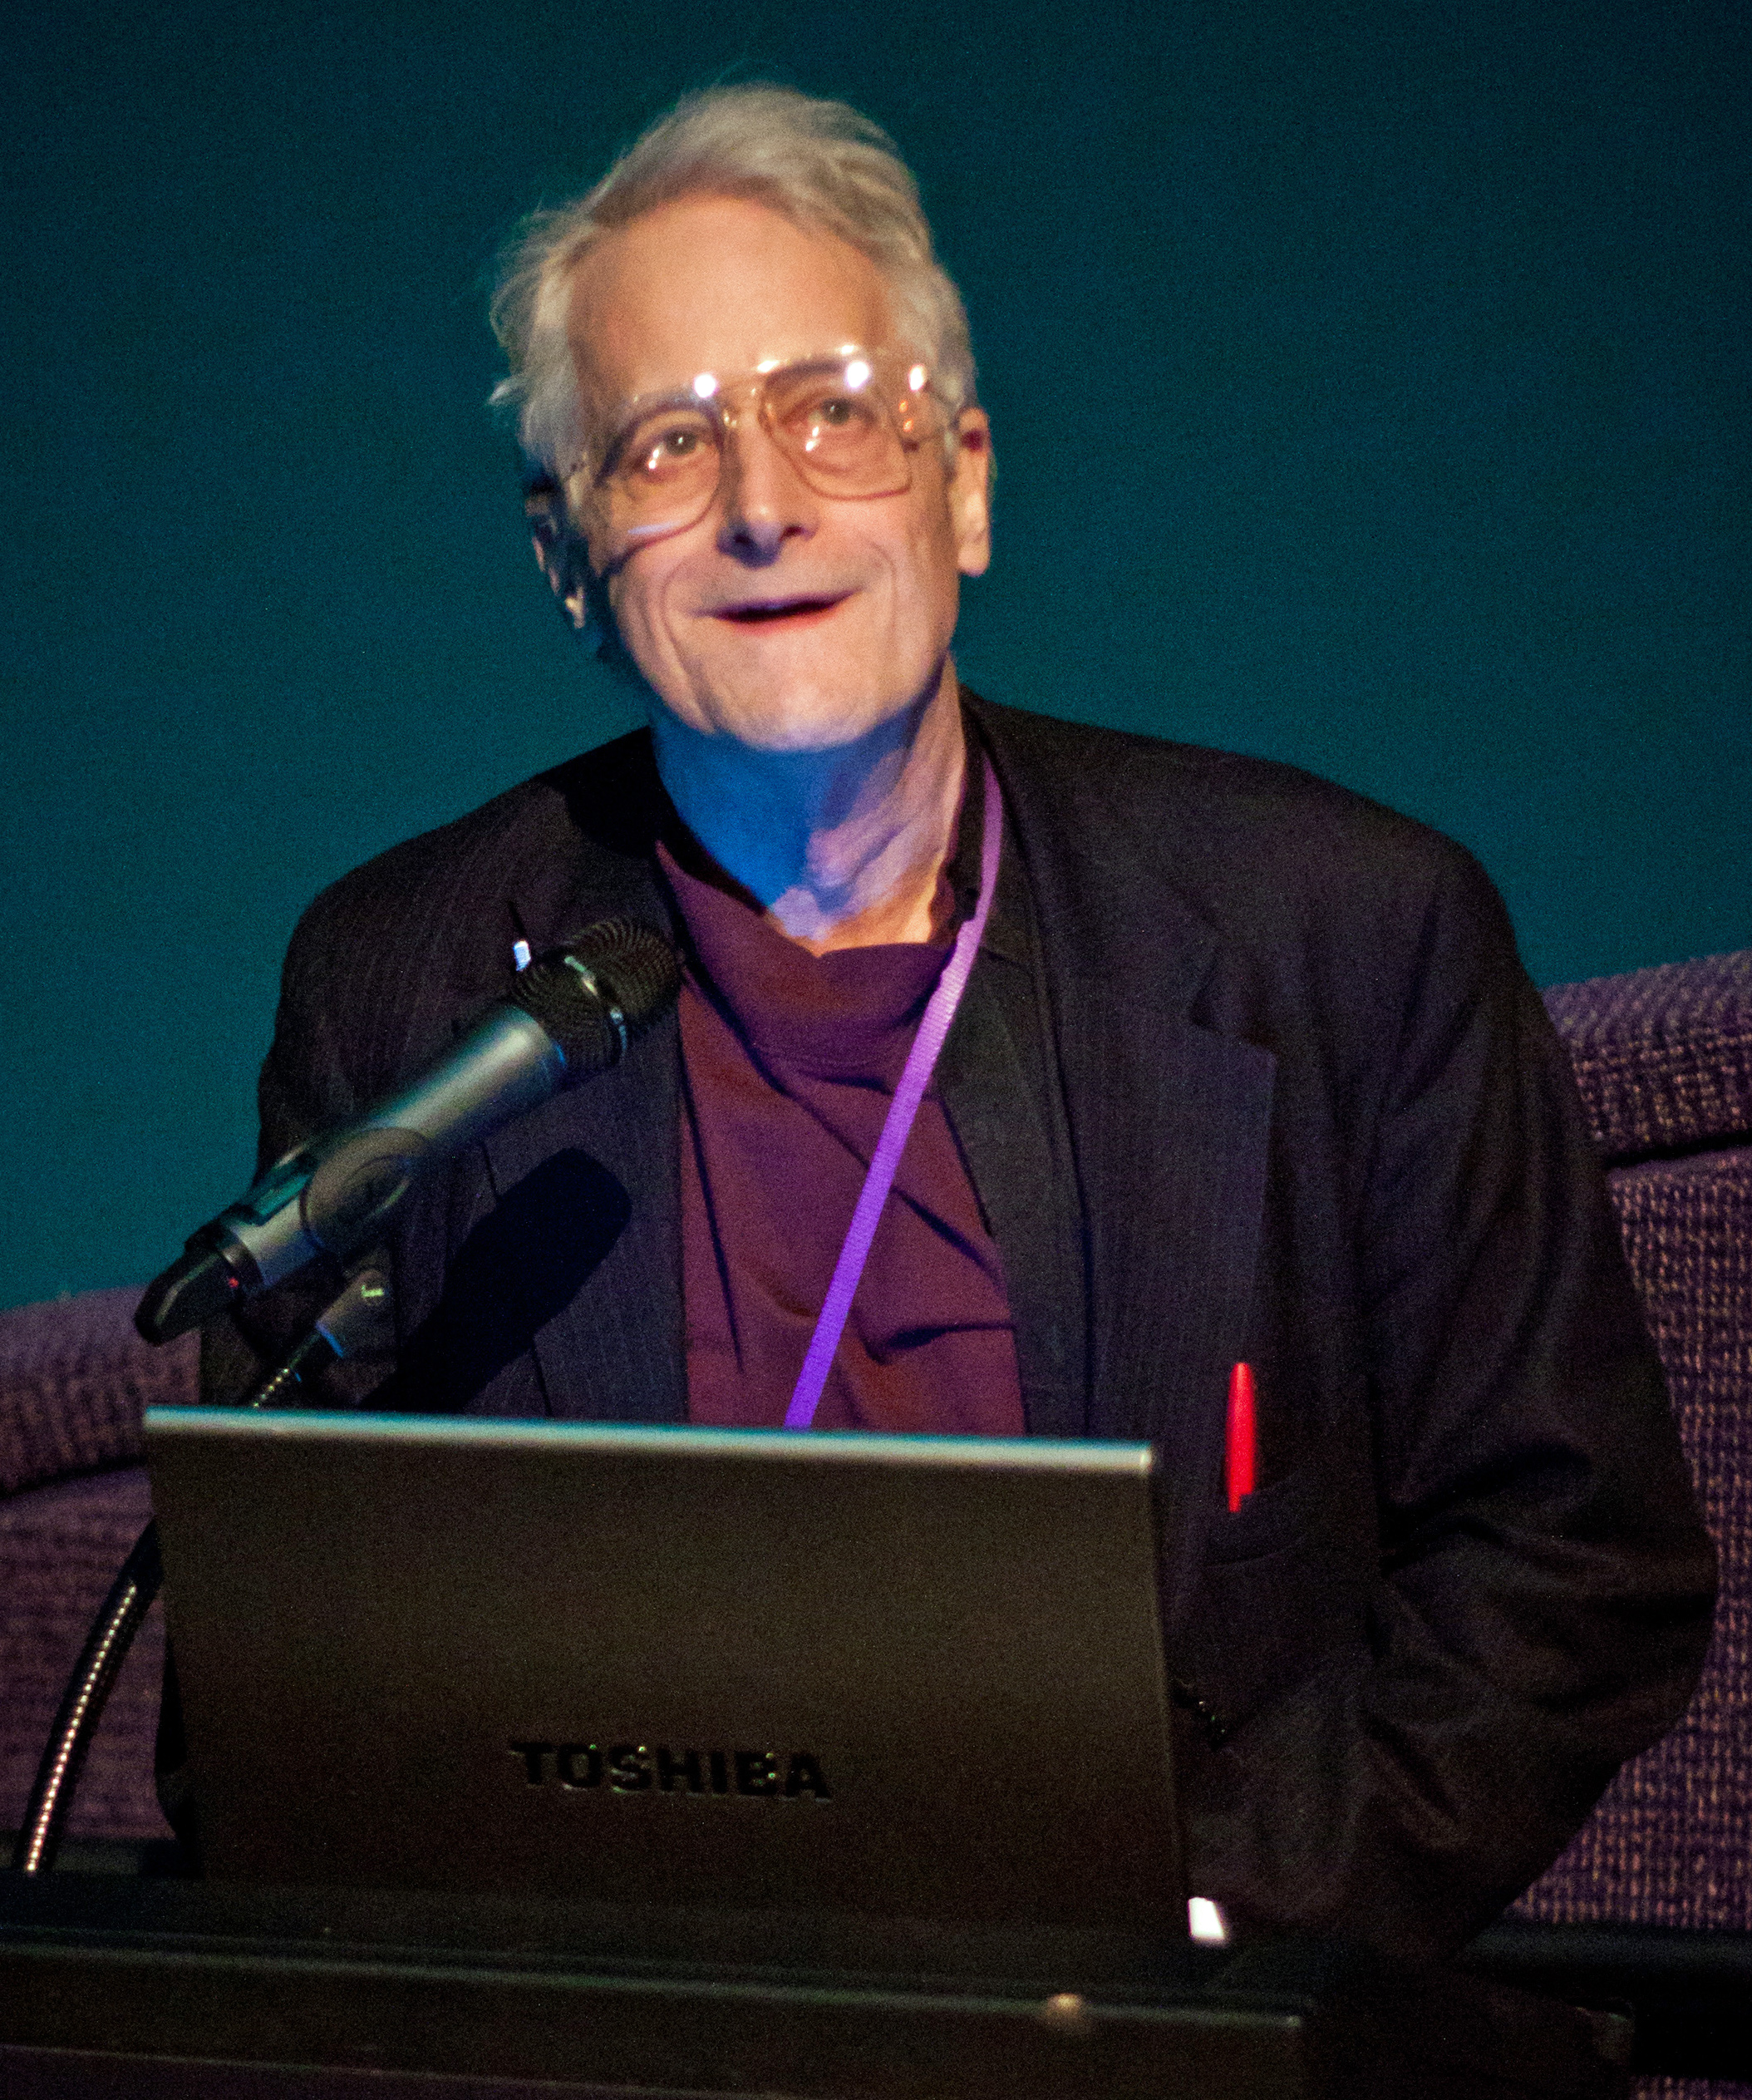 Dr Ted Nelson